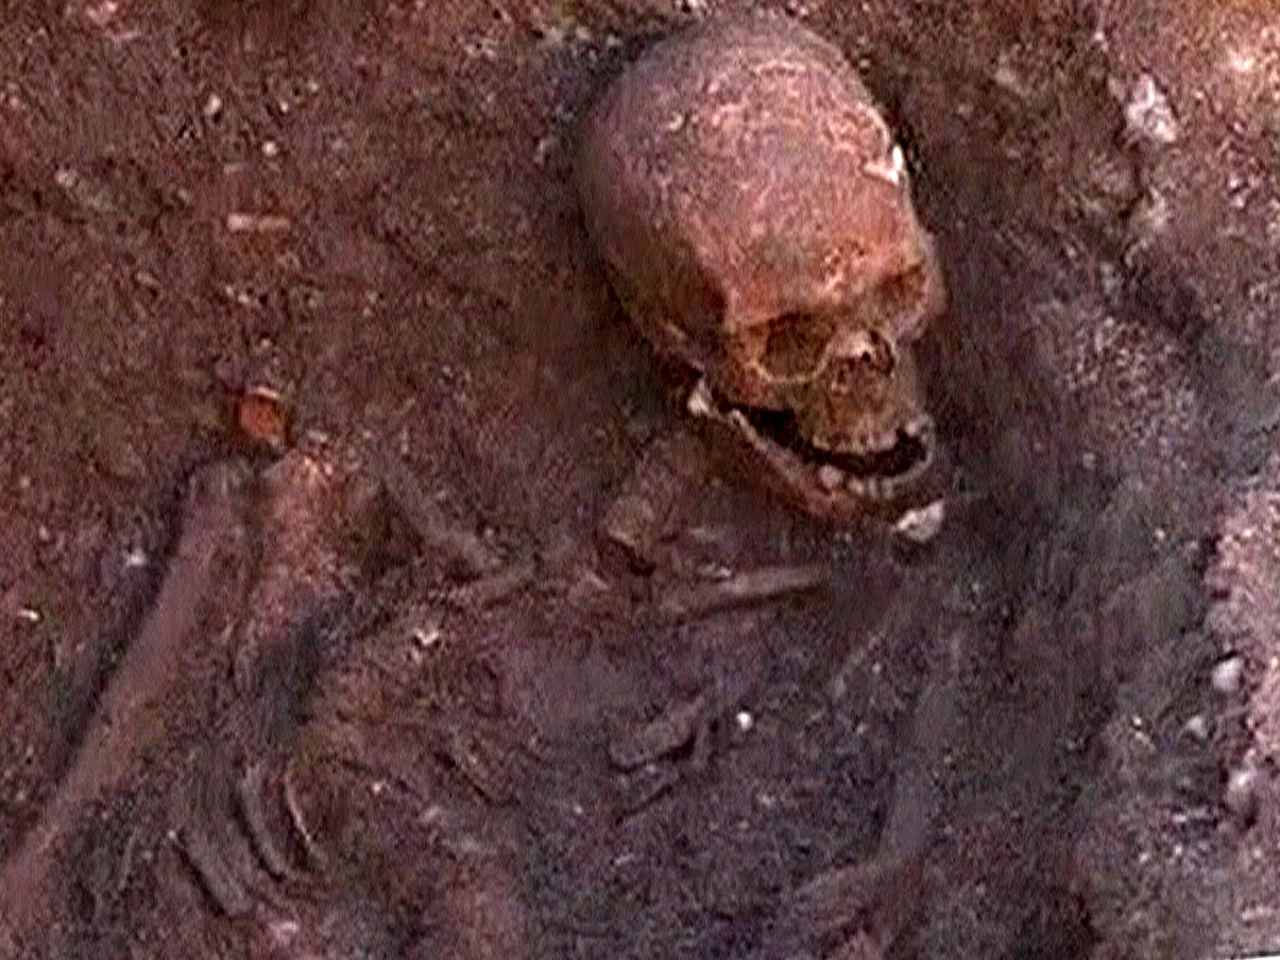 Verdict issued on skeleton found in parking lot: It's King Richard III